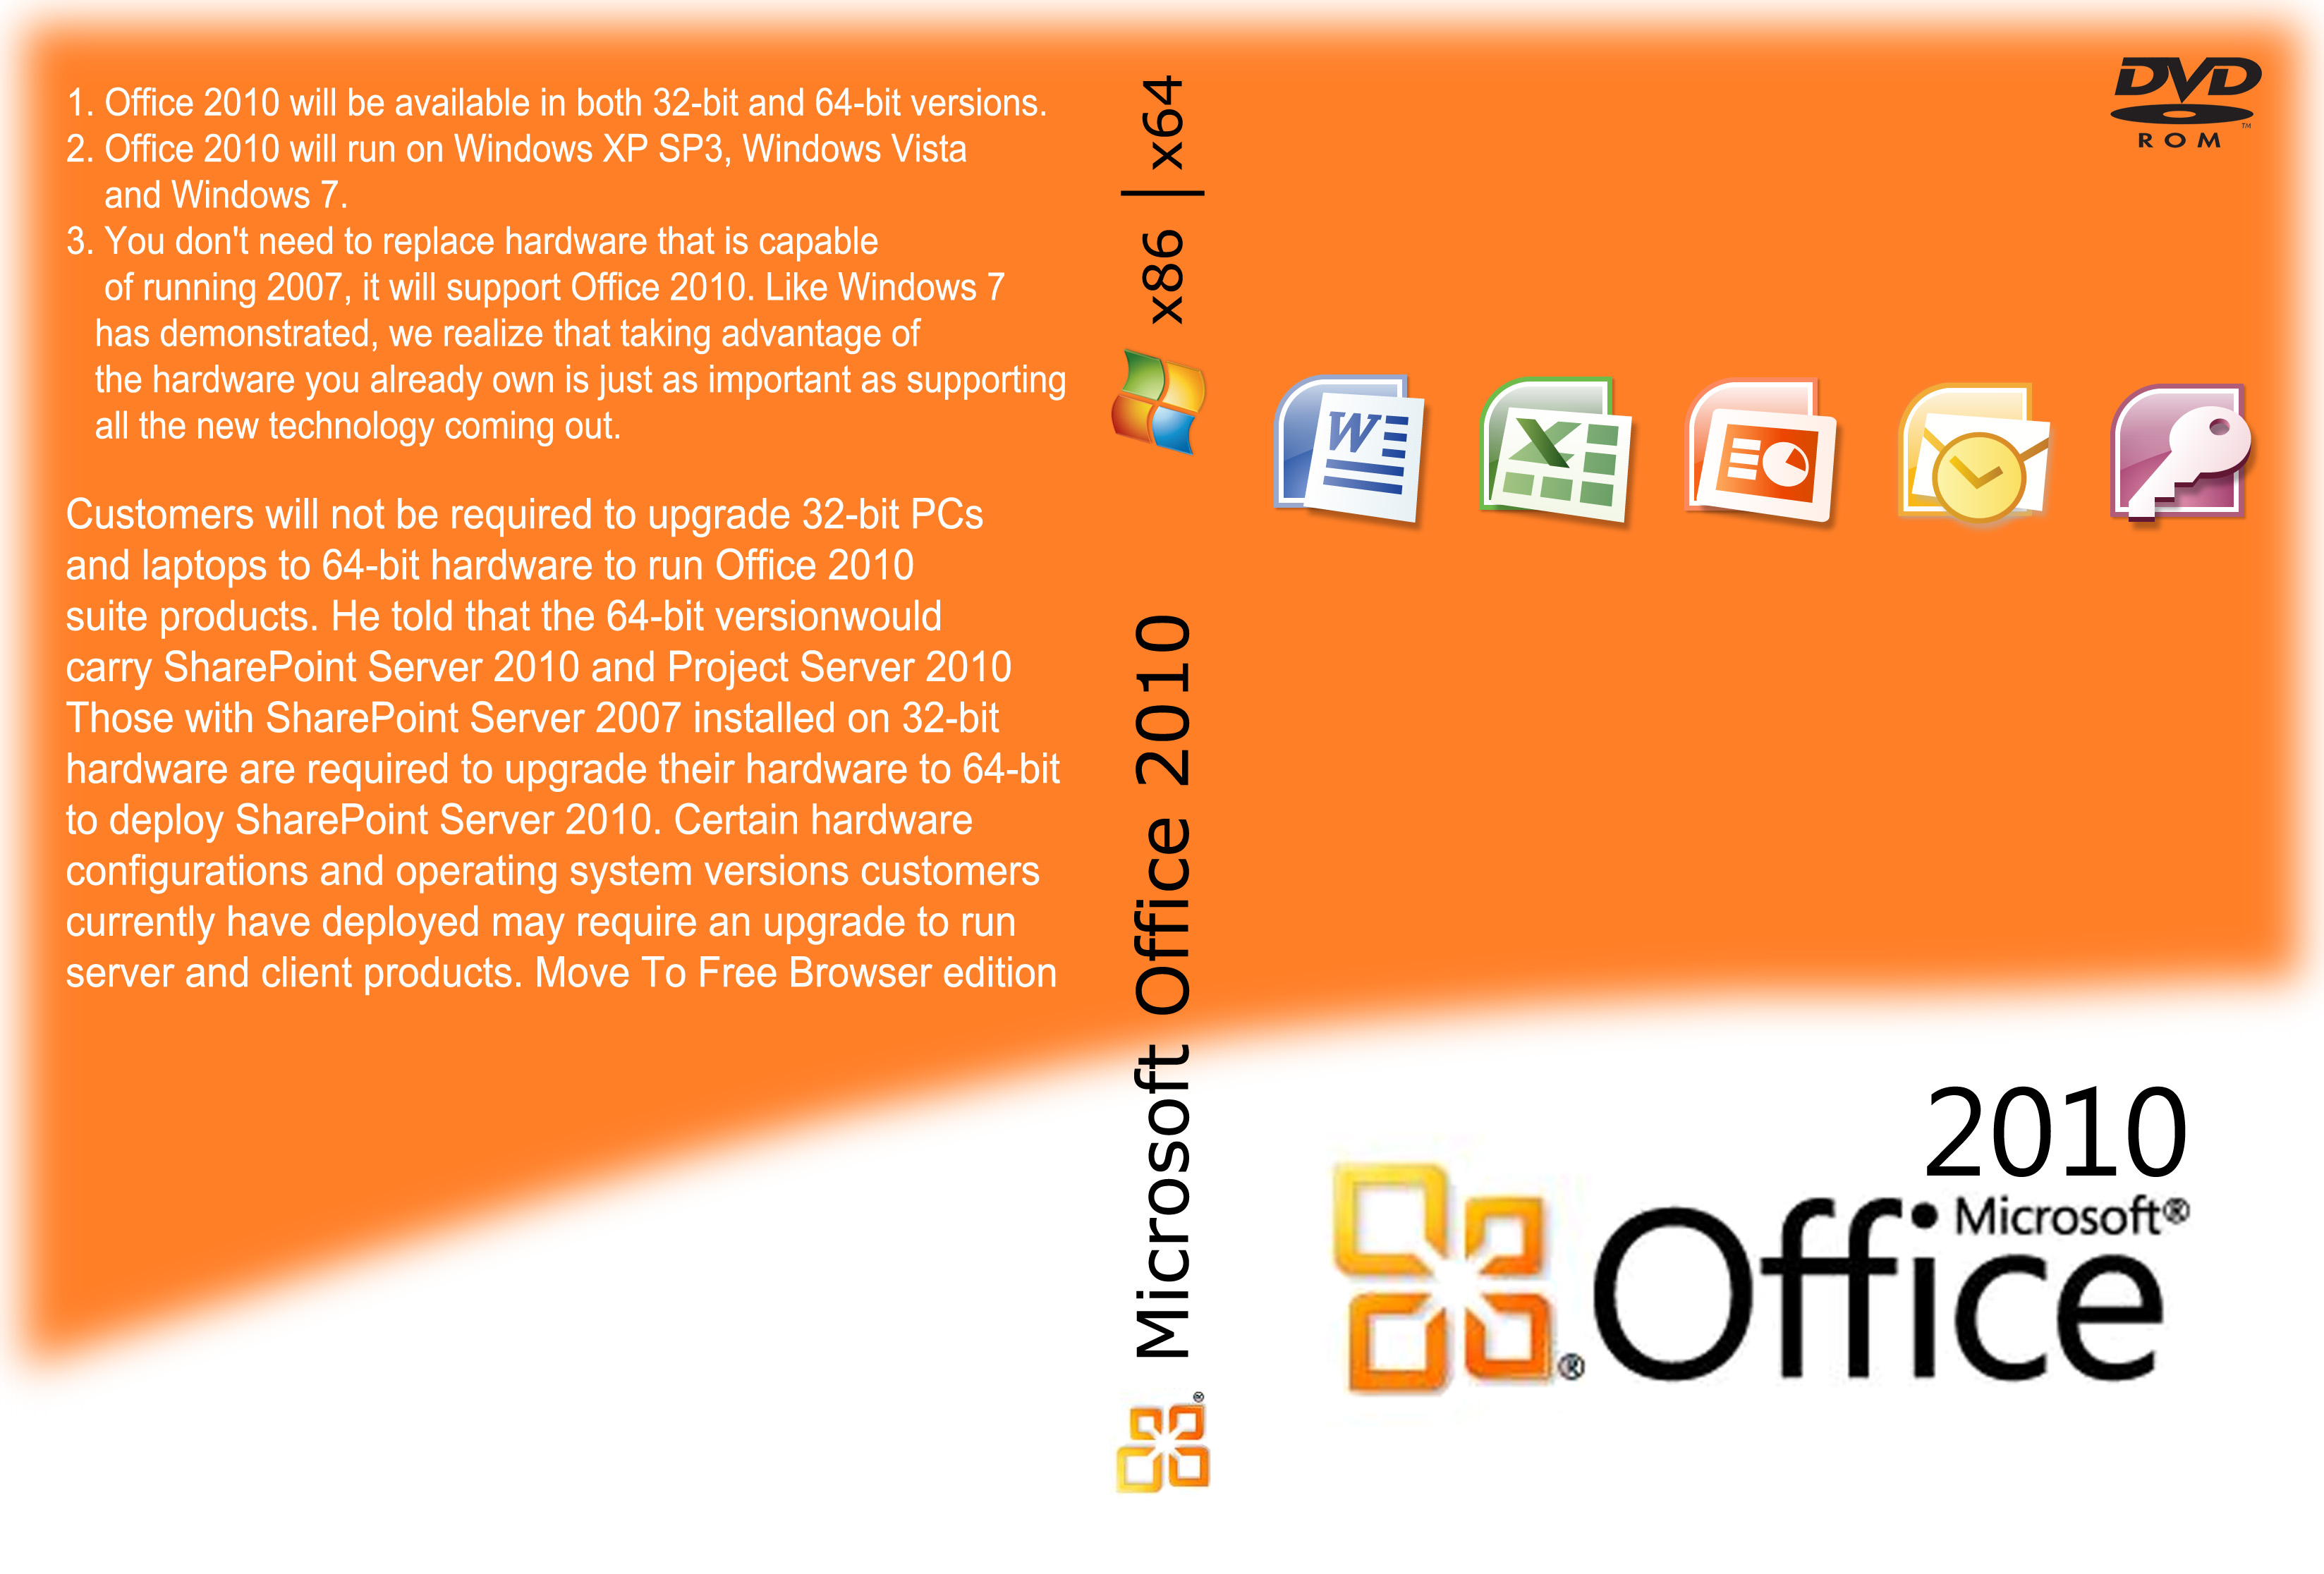 Download] Microsoft Office FRENCH 2010 Pre Cracked [K E Y gen Inside